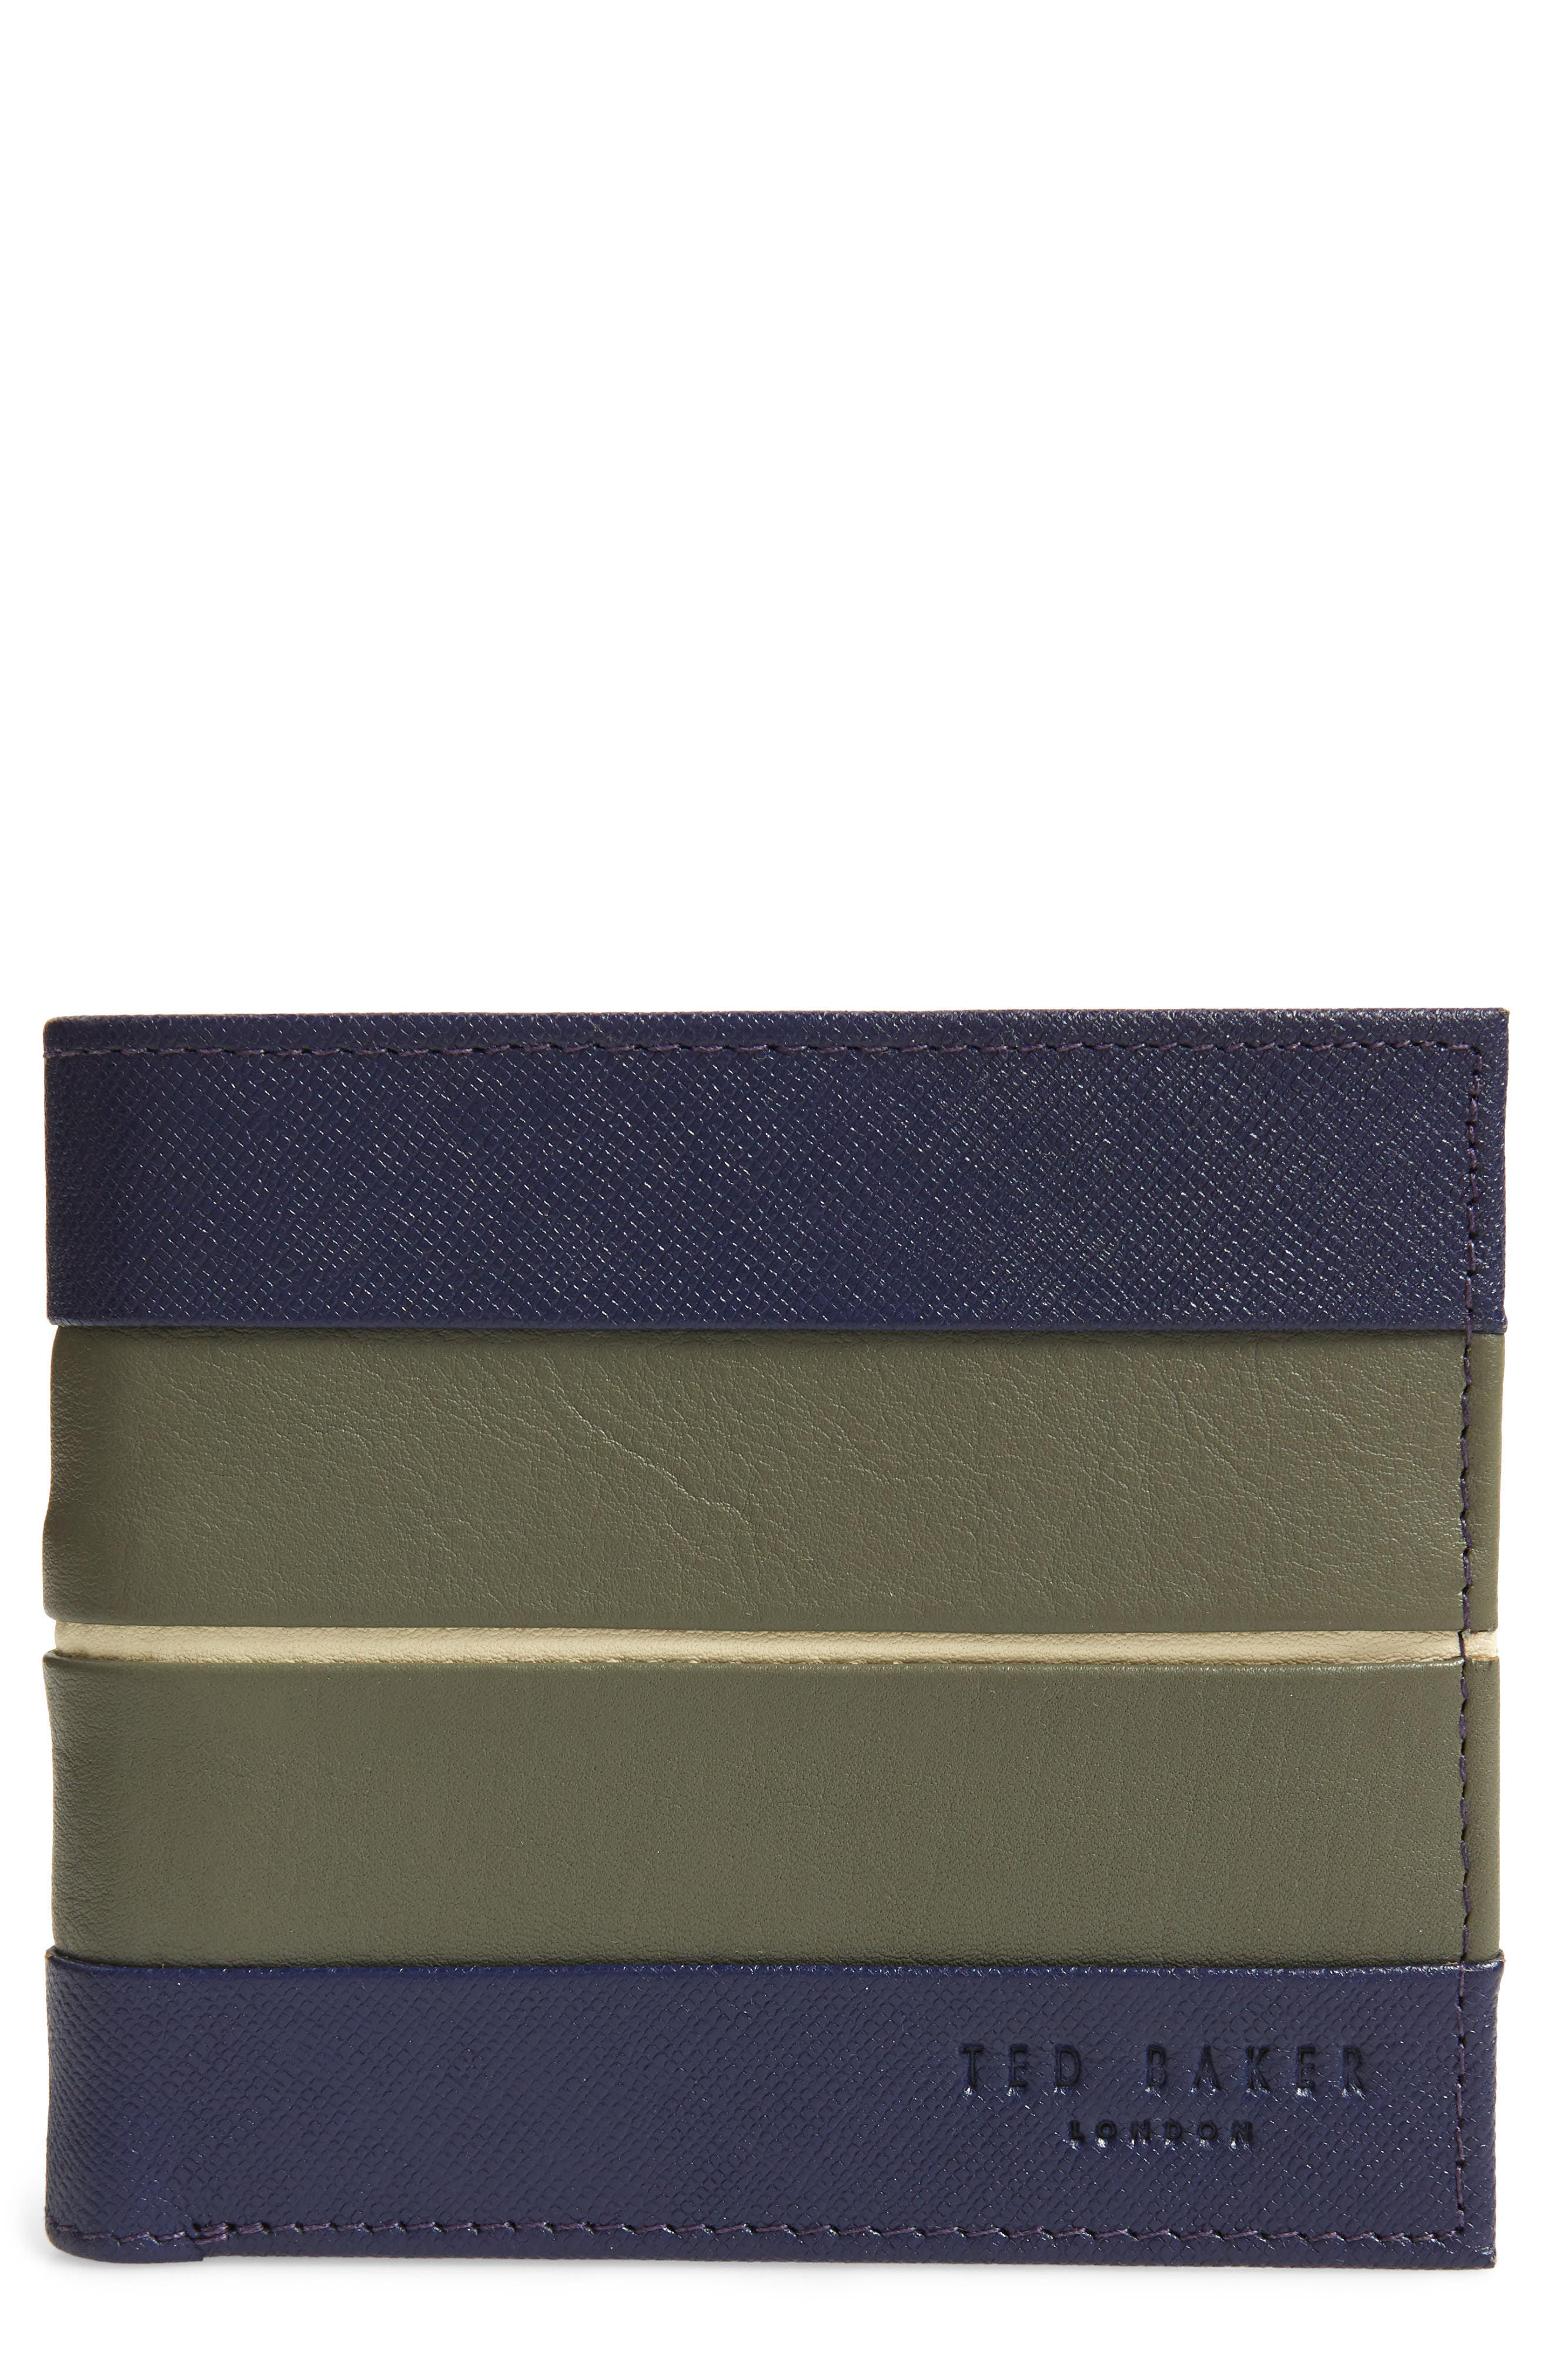 Striped Leather Bifold Wallet,                             Main thumbnail 1, color,                             410